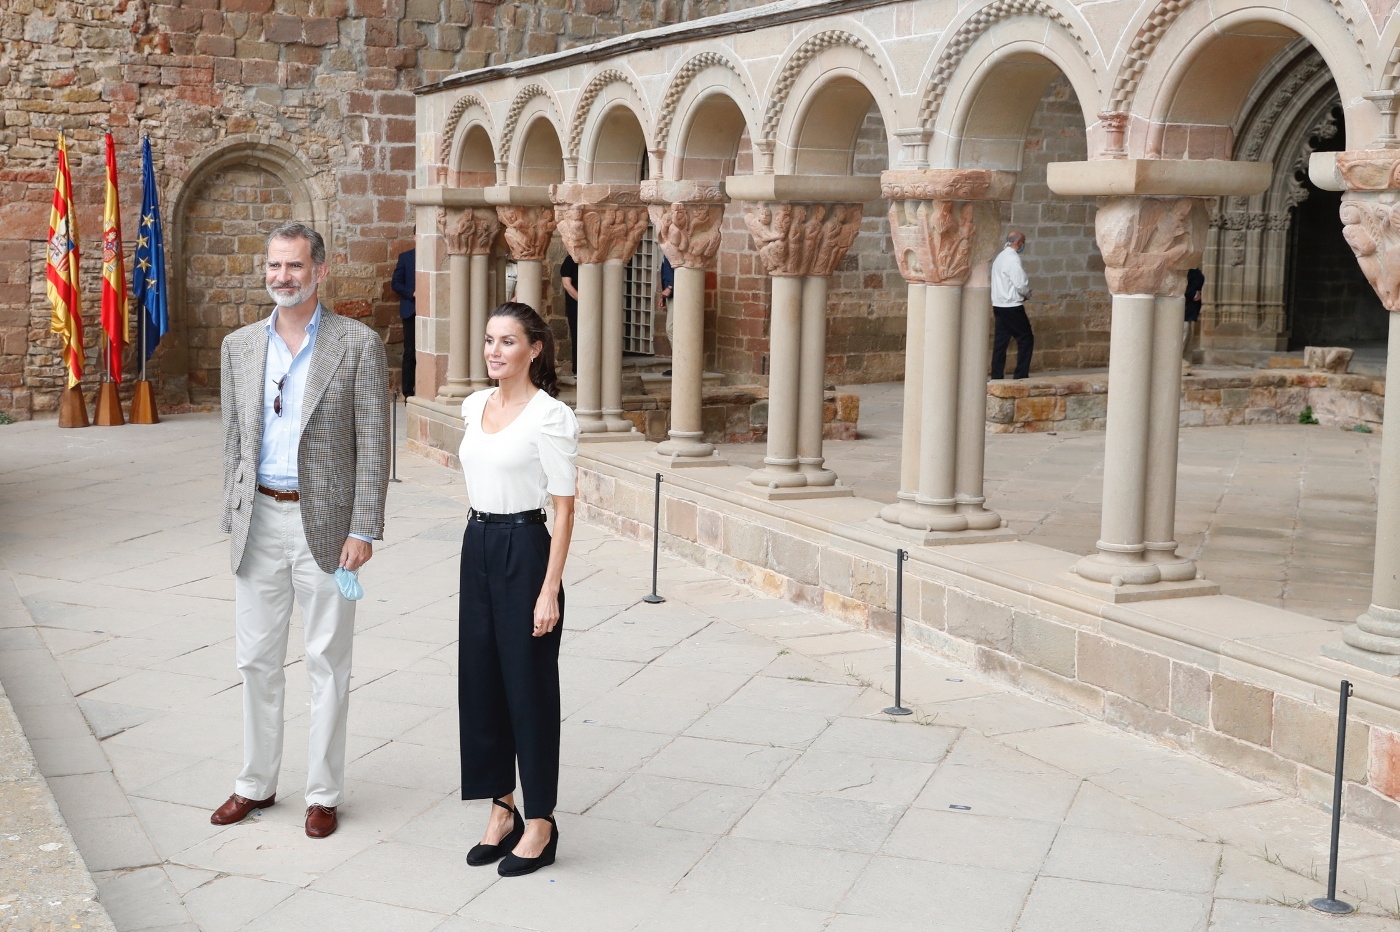 King Felipe and Queen Letizia of Spain at Monastery of San Juan de la Peña in front of the Romanesque Cloister in Huesca